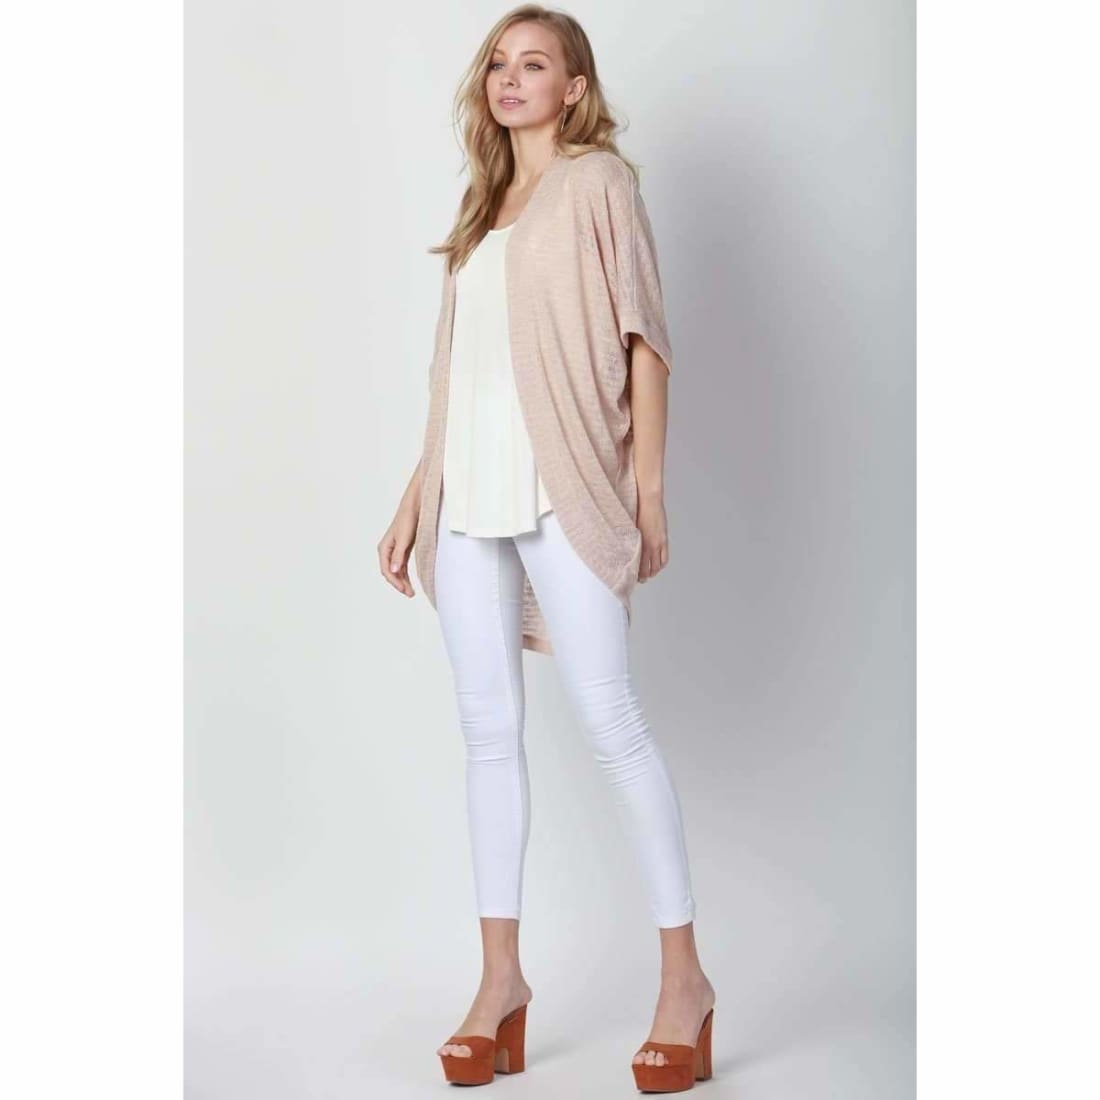 Coa Womens Early Summer Cardigan Cardigan